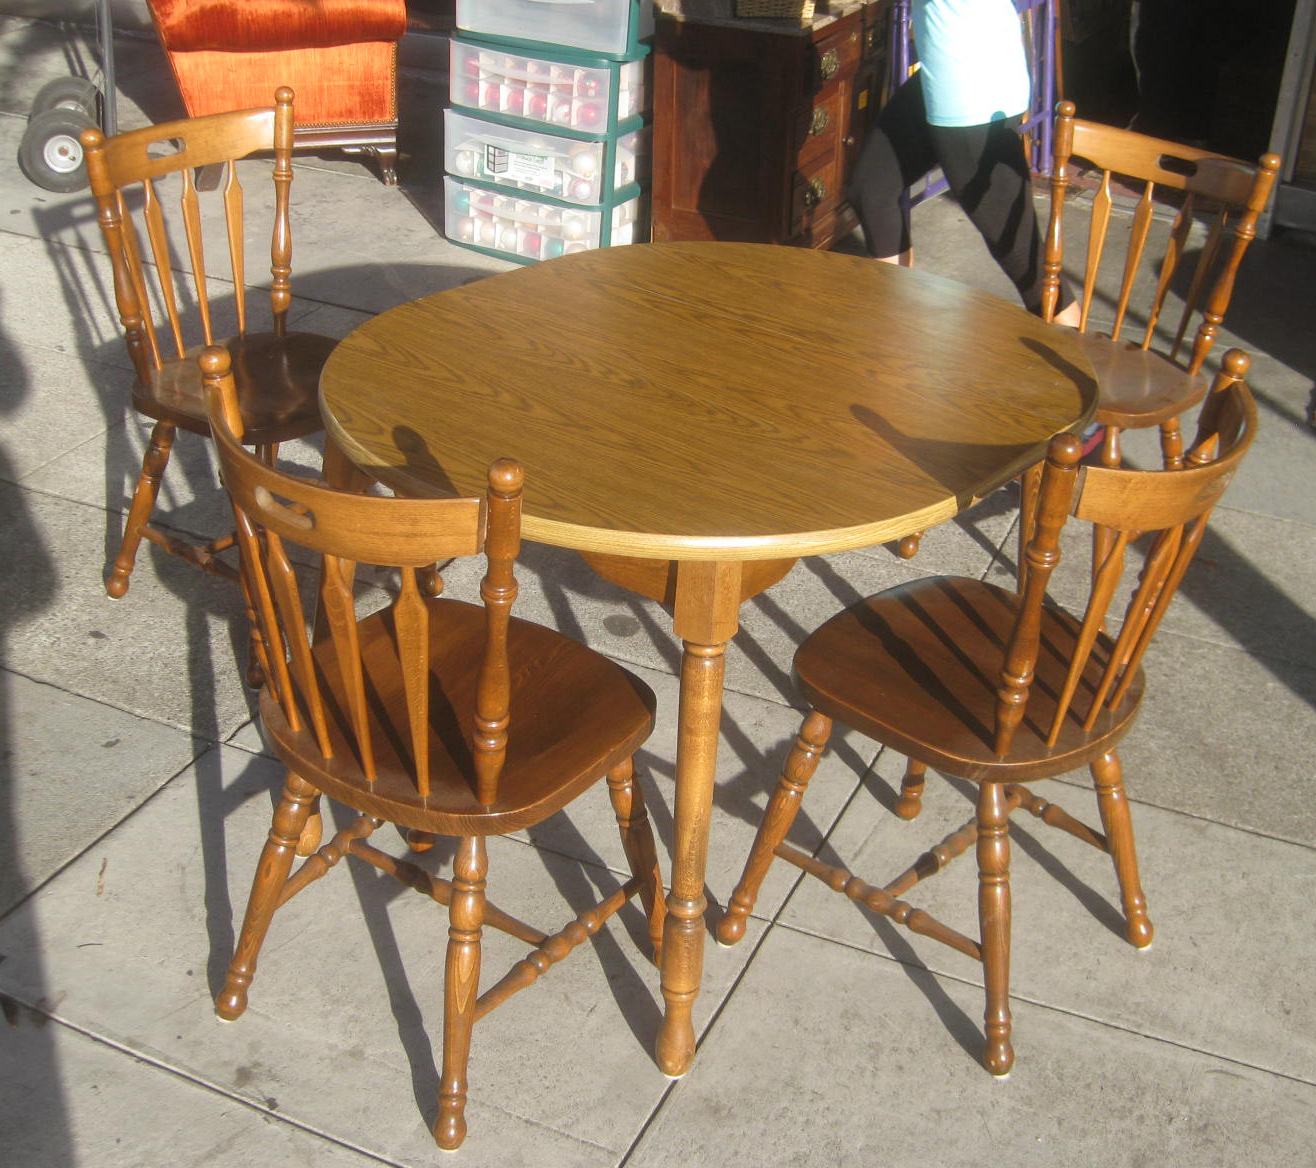 Uhuru furniture collectibles sold kitchen table and for Small kitchen table with 4 chairs